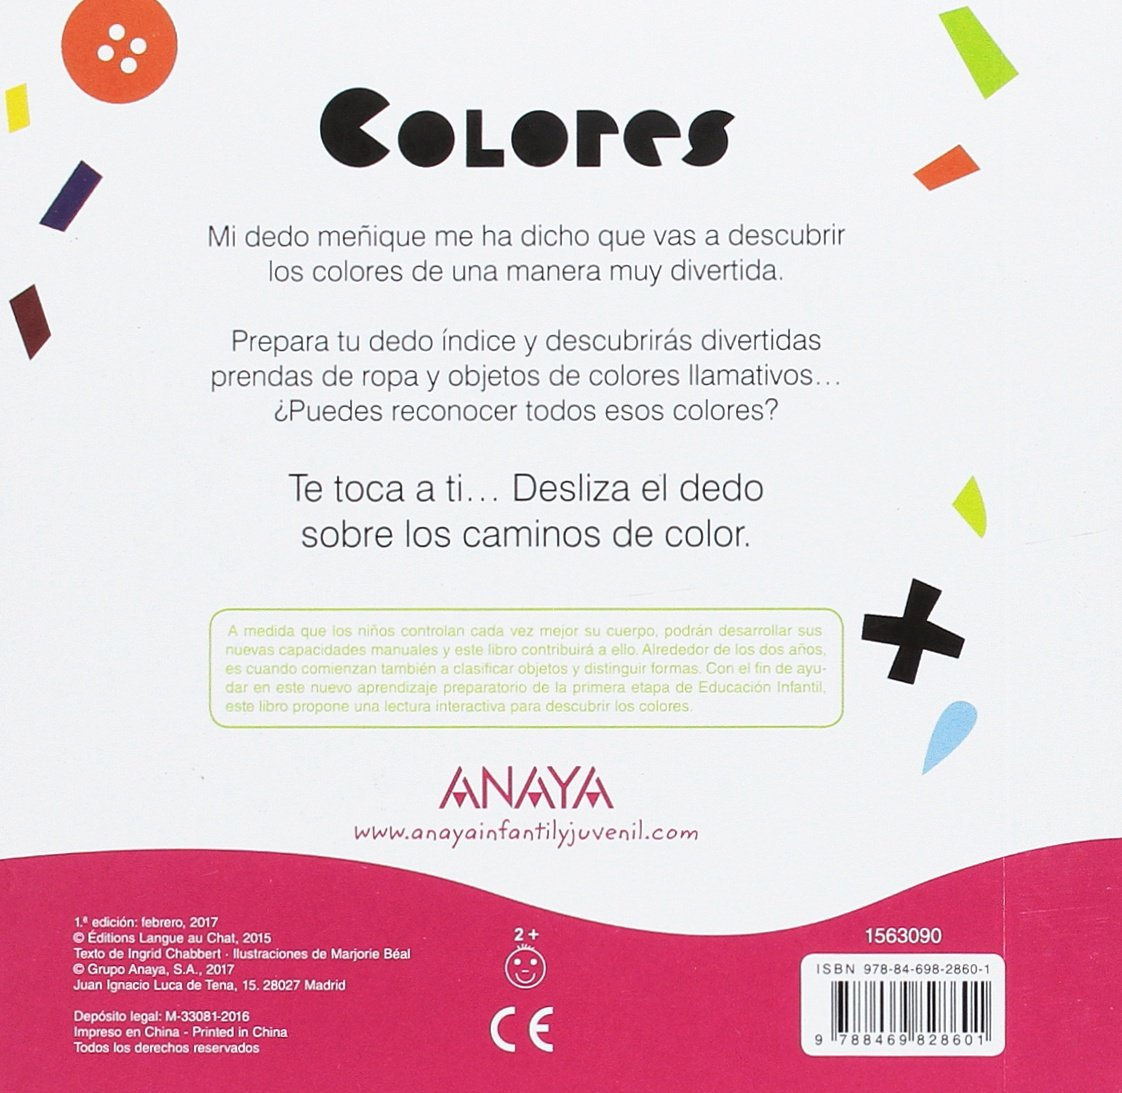 Colores (Spanish Edition): Ingrid Chabbert, Anaya, Marjorie Béal: 9788469828601: Amazon.com: Books